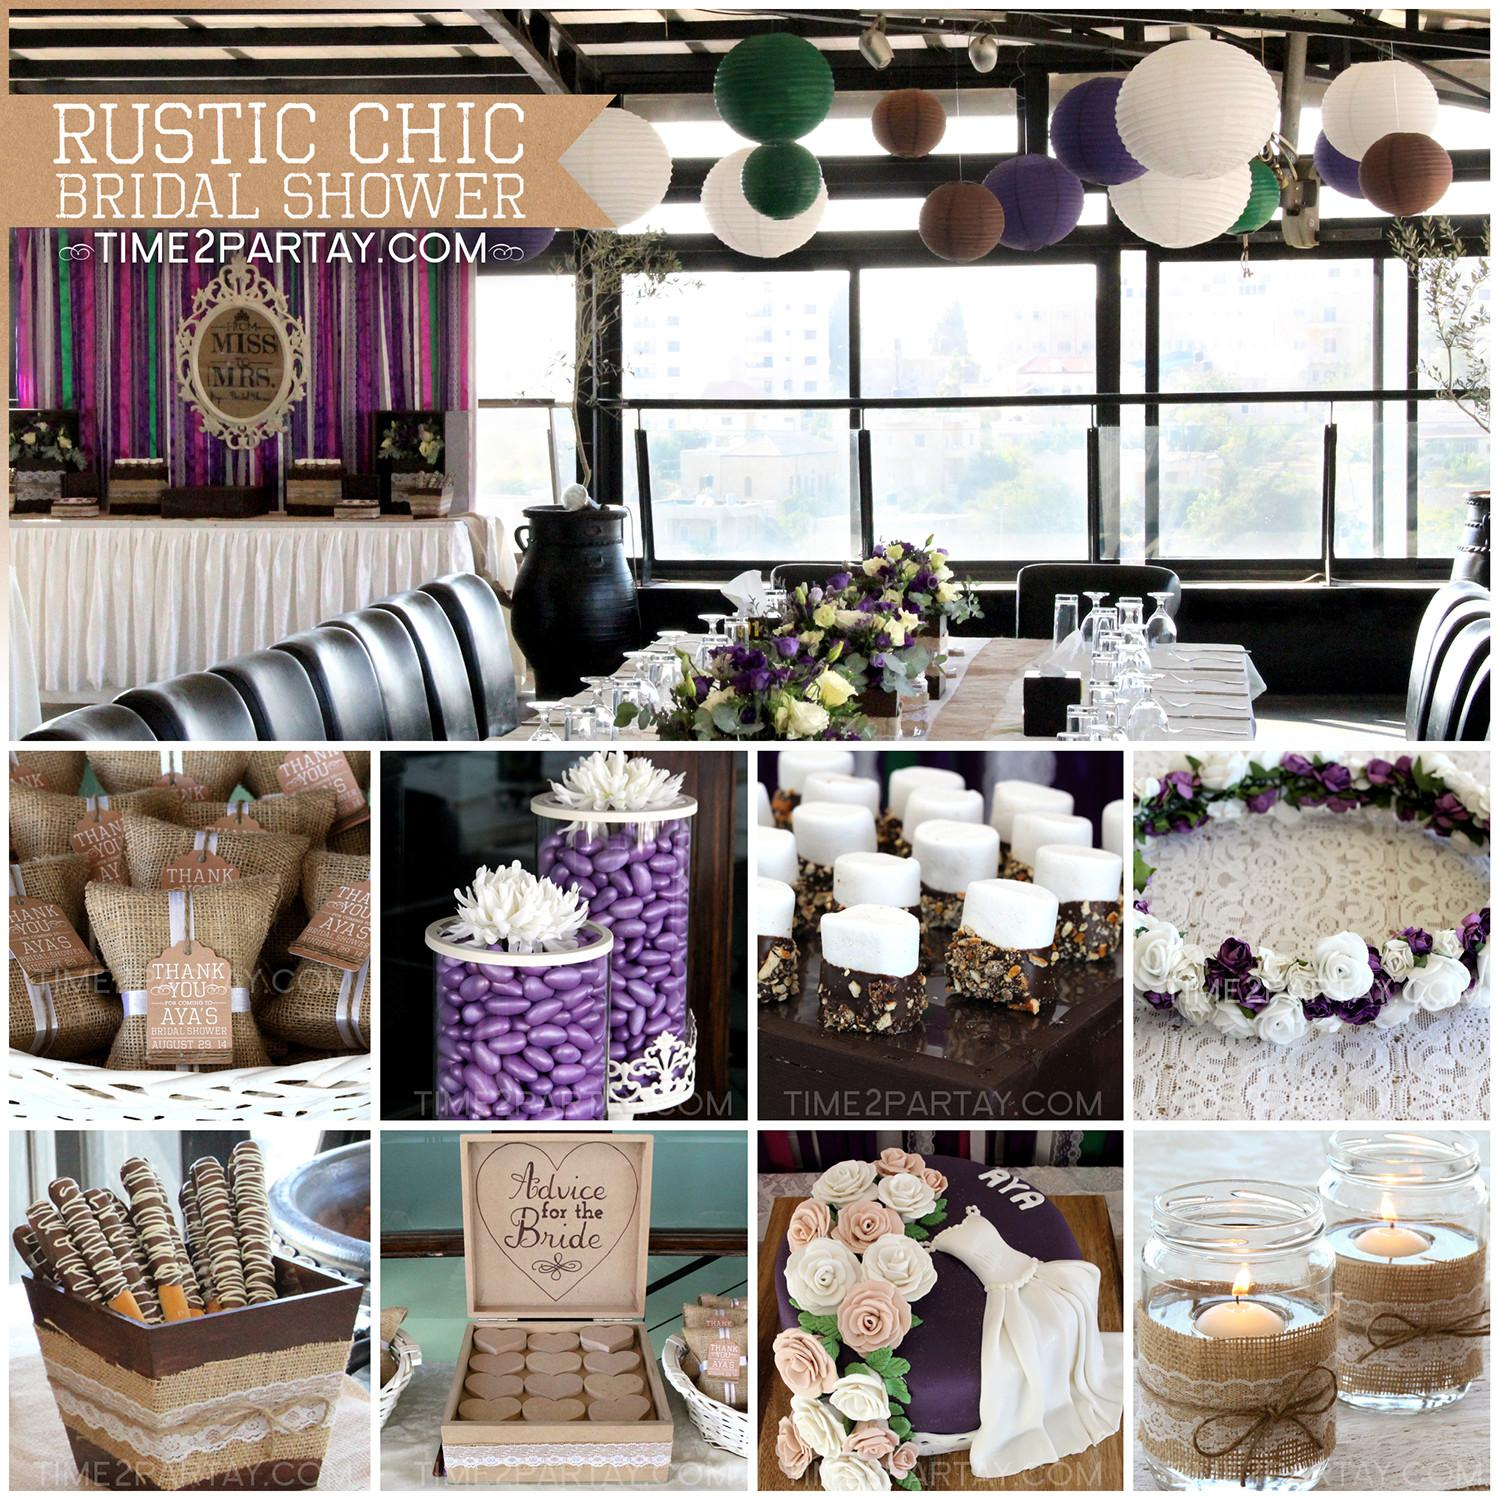 Aya Rustic Chic Bridal Shower Time2partay